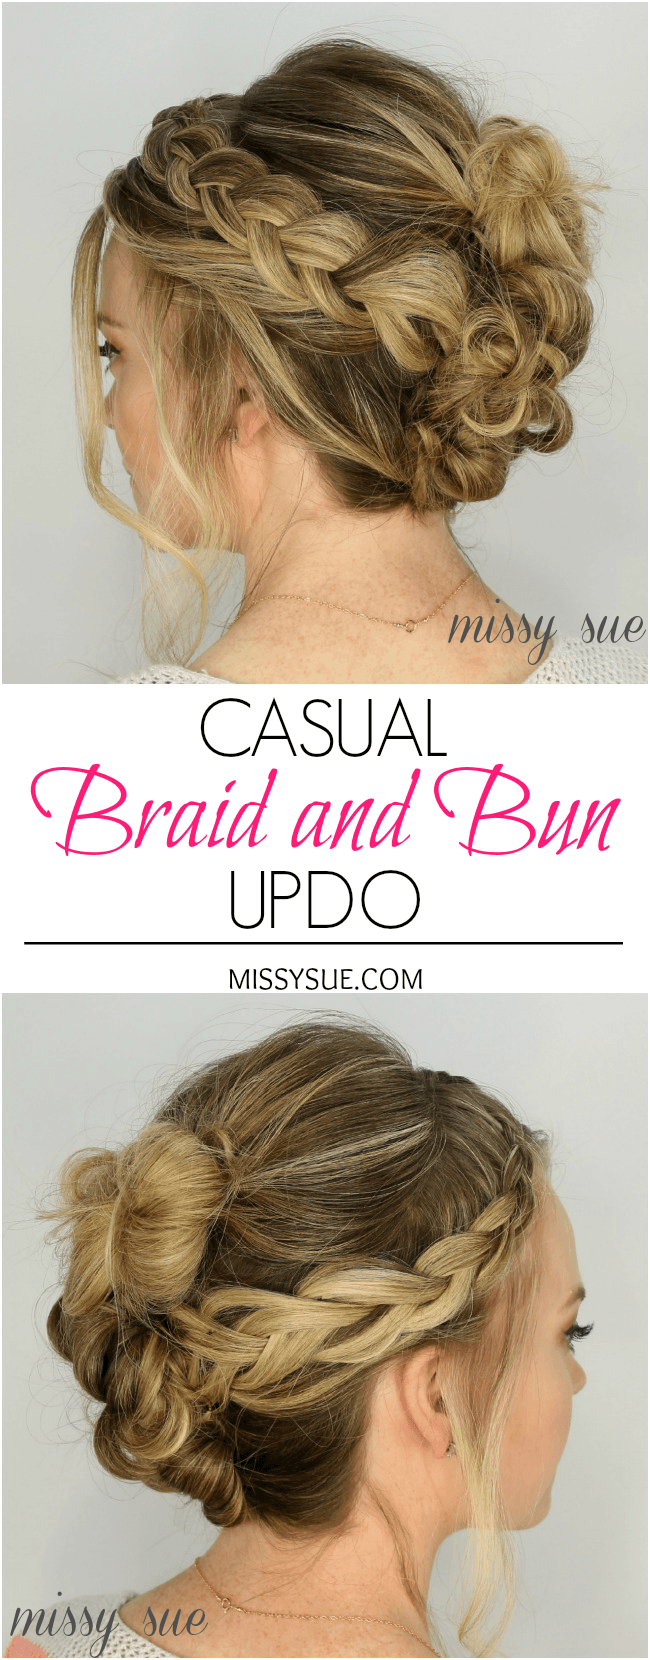 braid-three-buns-hairstyle-summer